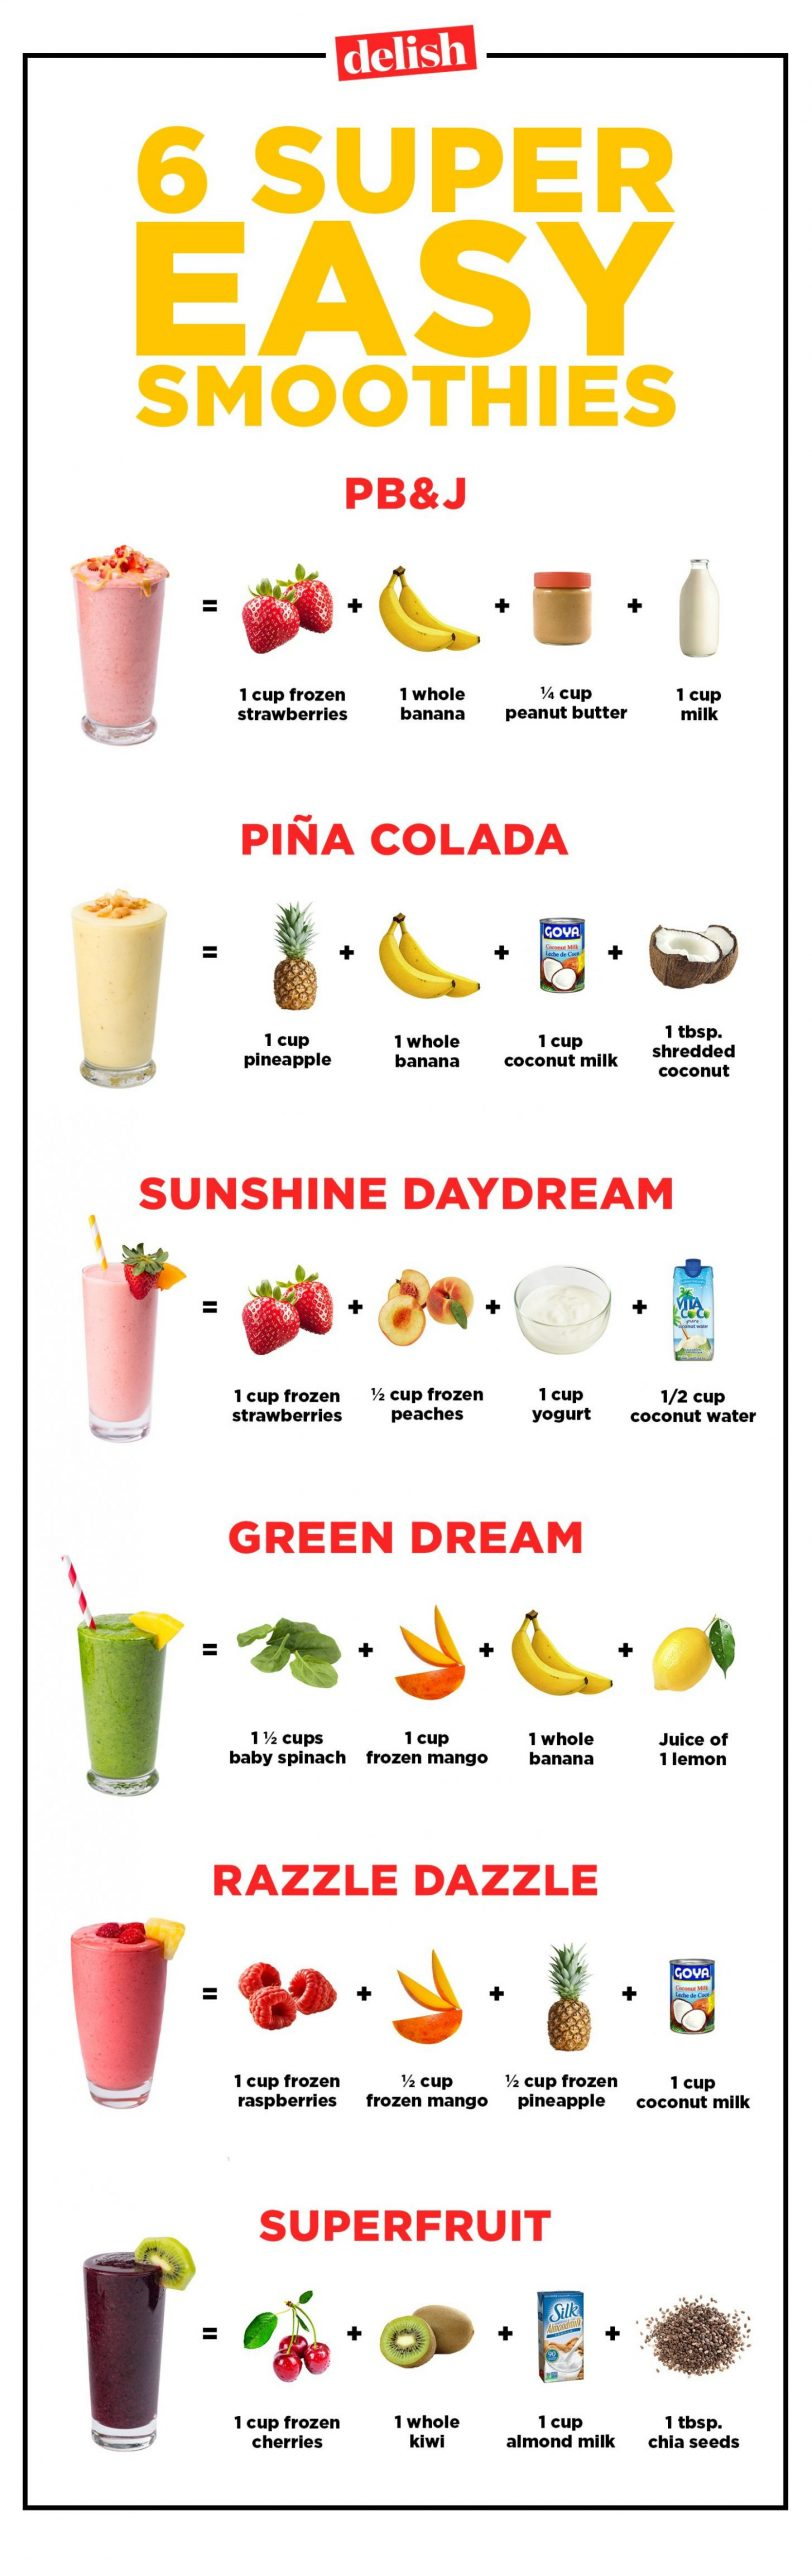 11+ Healthy Fruit Smoothie Recipes - How to Make Healthy Breakfast ..